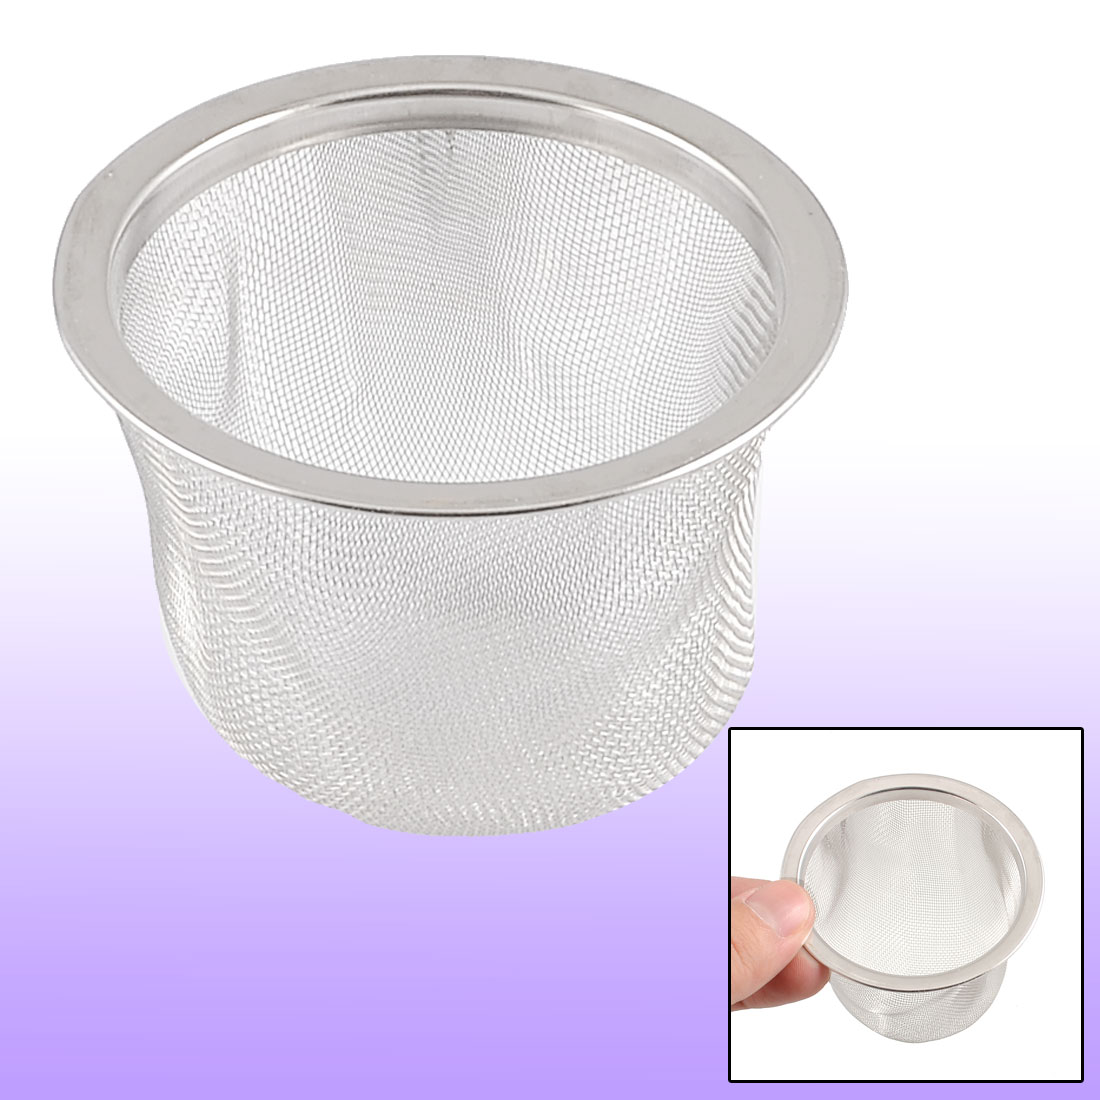 65mm-Silver-Tone-Stainless-Steel-Mesh-Tea-Leaves-Spice-Strainer-Basket